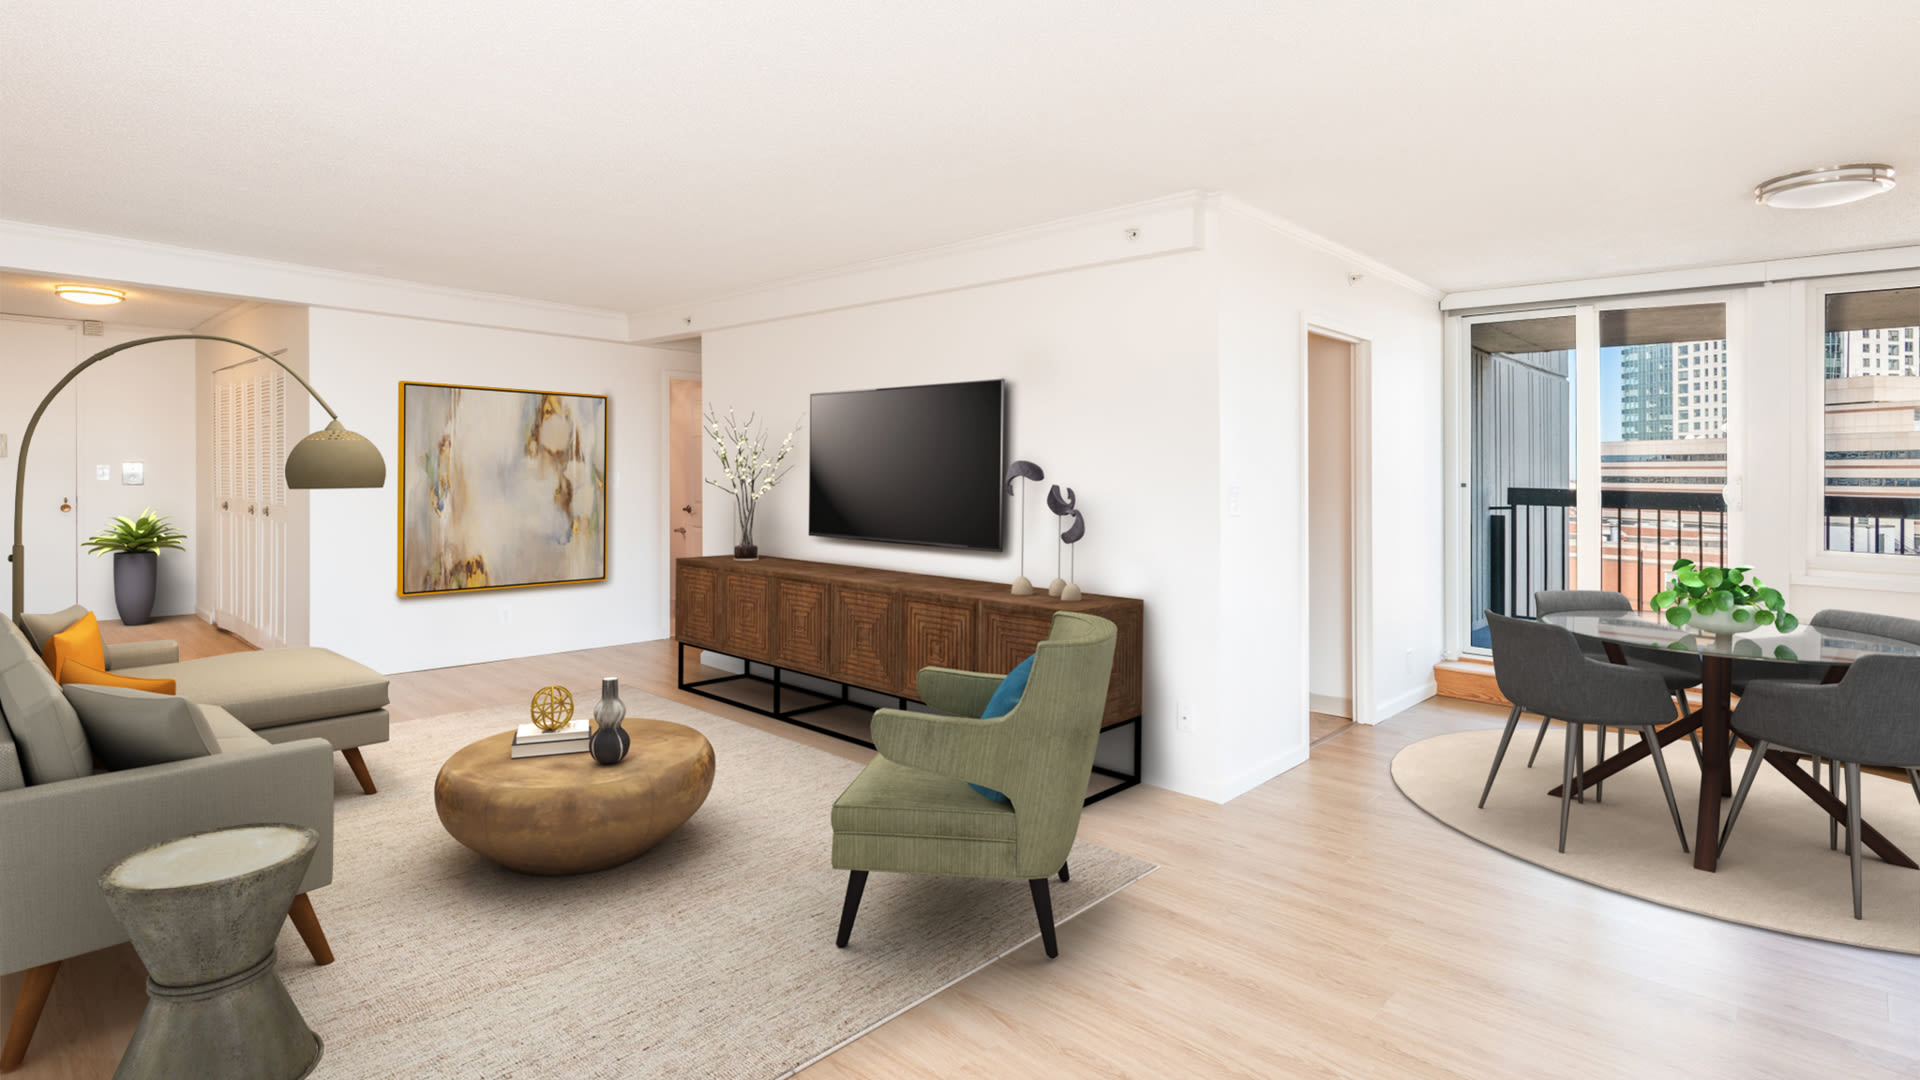 The Towers at Longfellow Apartments - Living Room with Balcony and Hard Surface Flooring